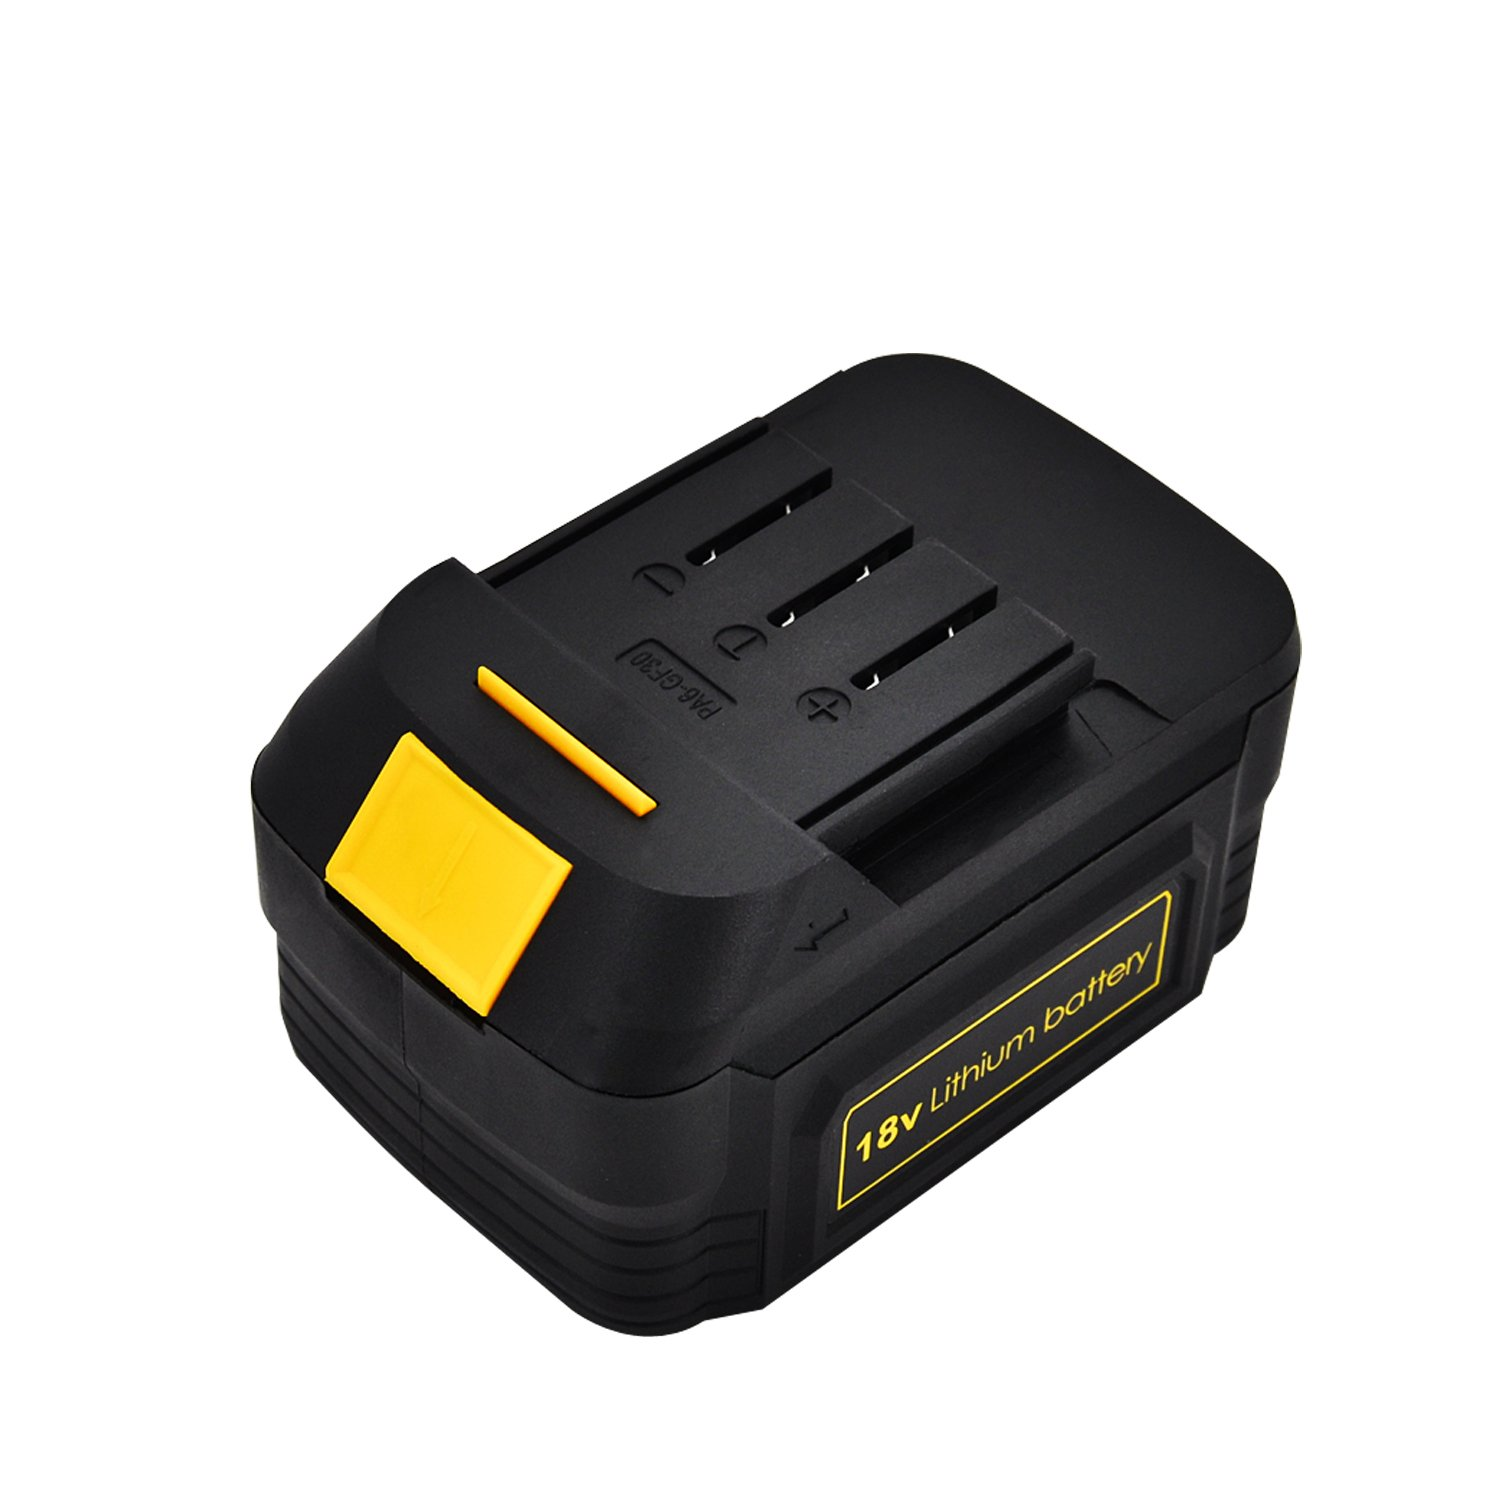 Werktough 3000mAh Replacement Li-on Battery For Cordless Impact Wrench IW03 18V